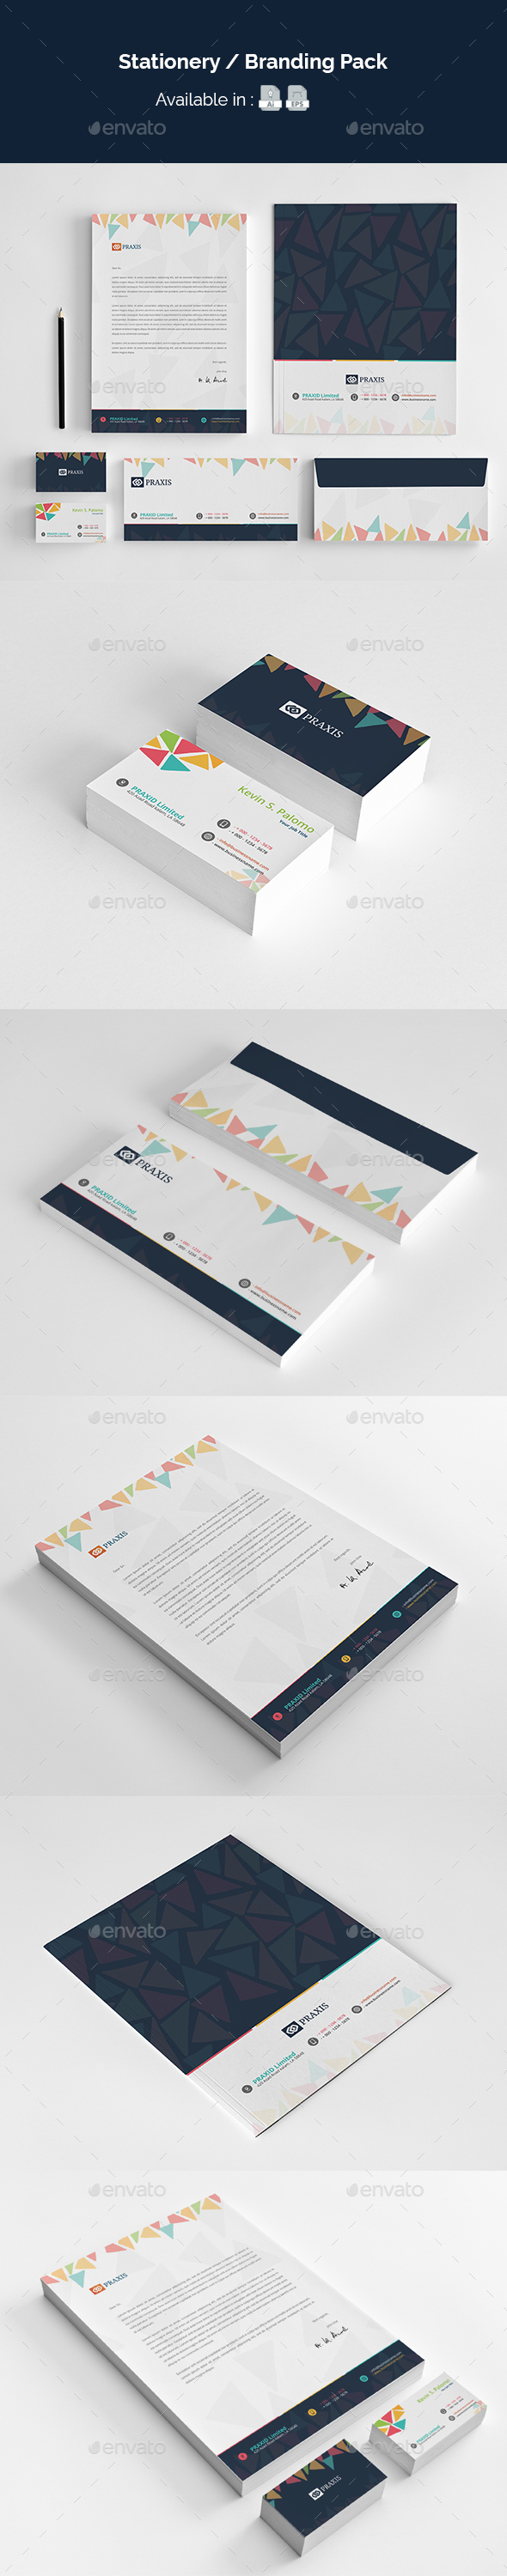 GraphicRiver Stationery Branding Pack 20468905